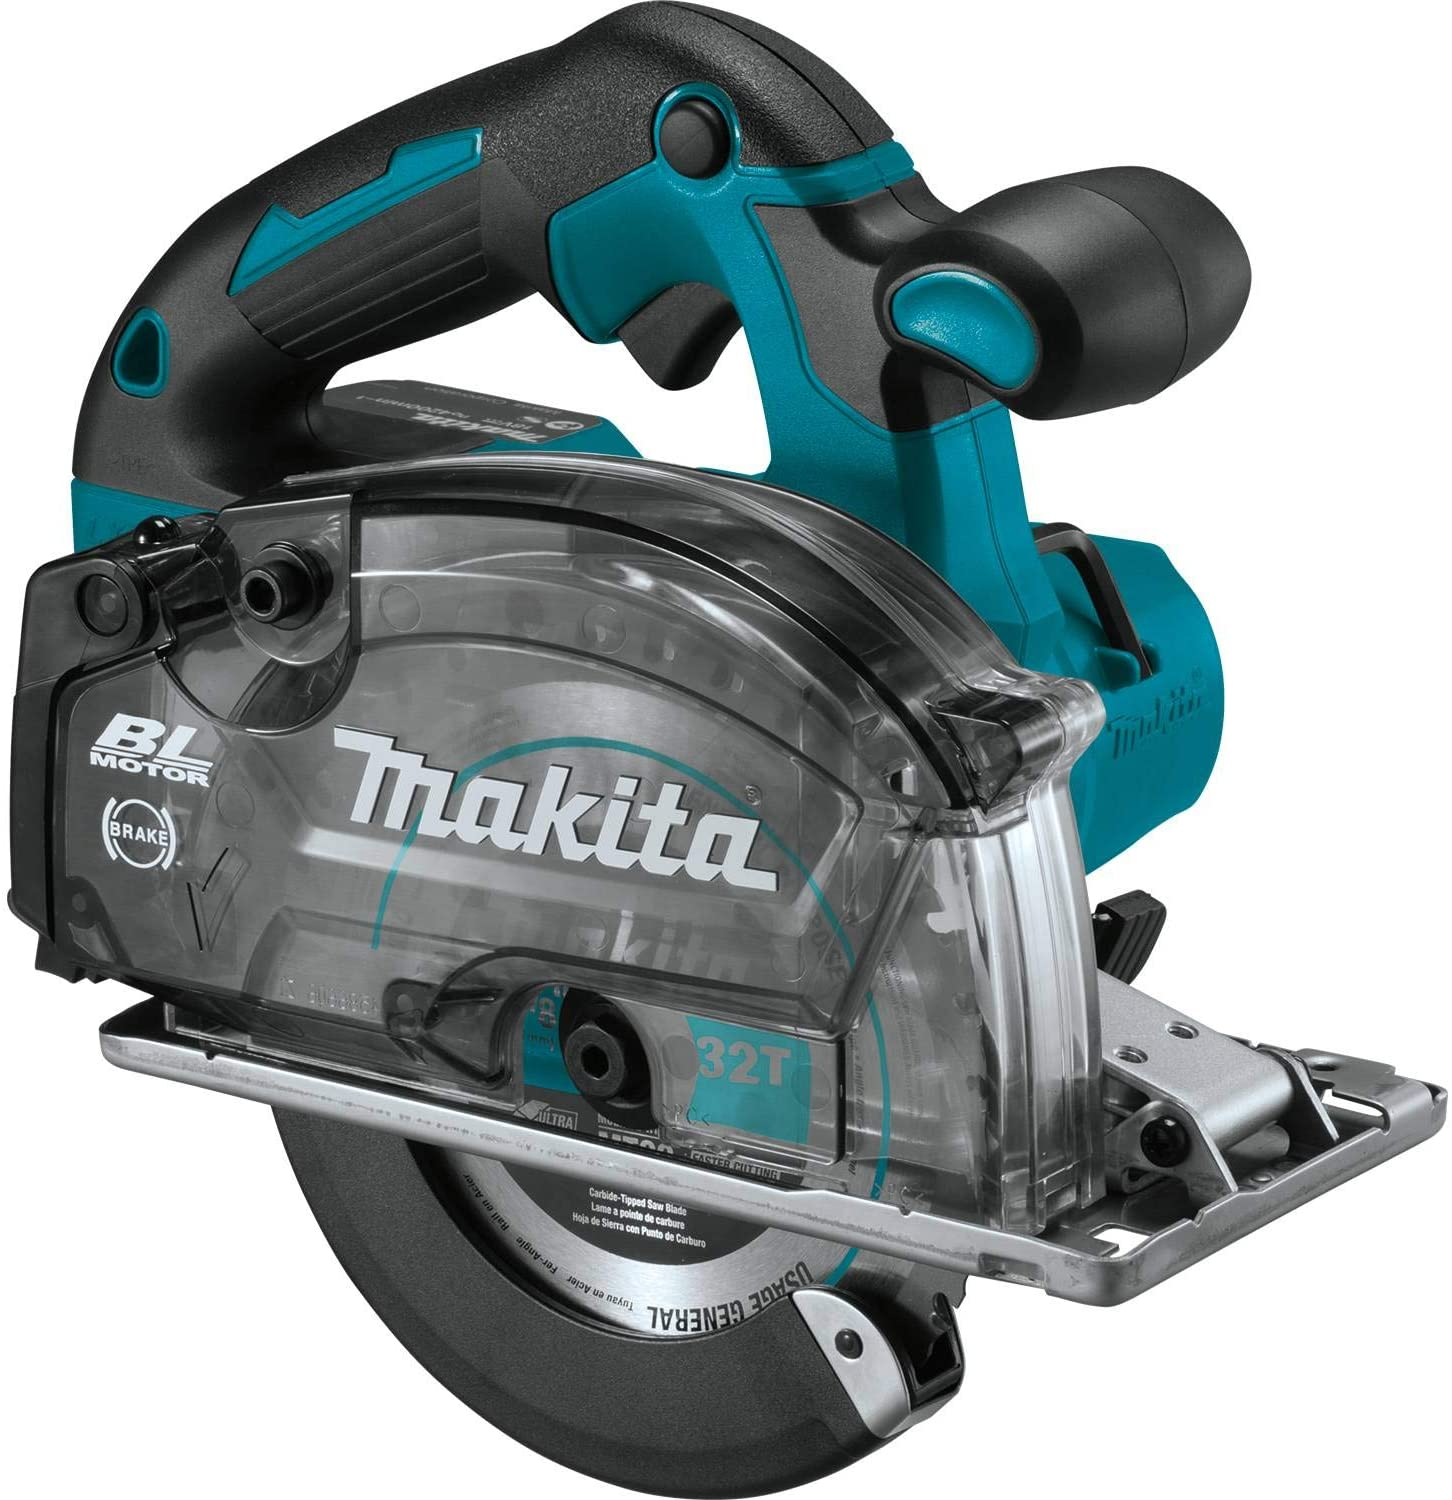 Makita XSC04Z 18V LXT Lithium-Ion Brushless Cordless 5-7 8 Metal Cutting Saw